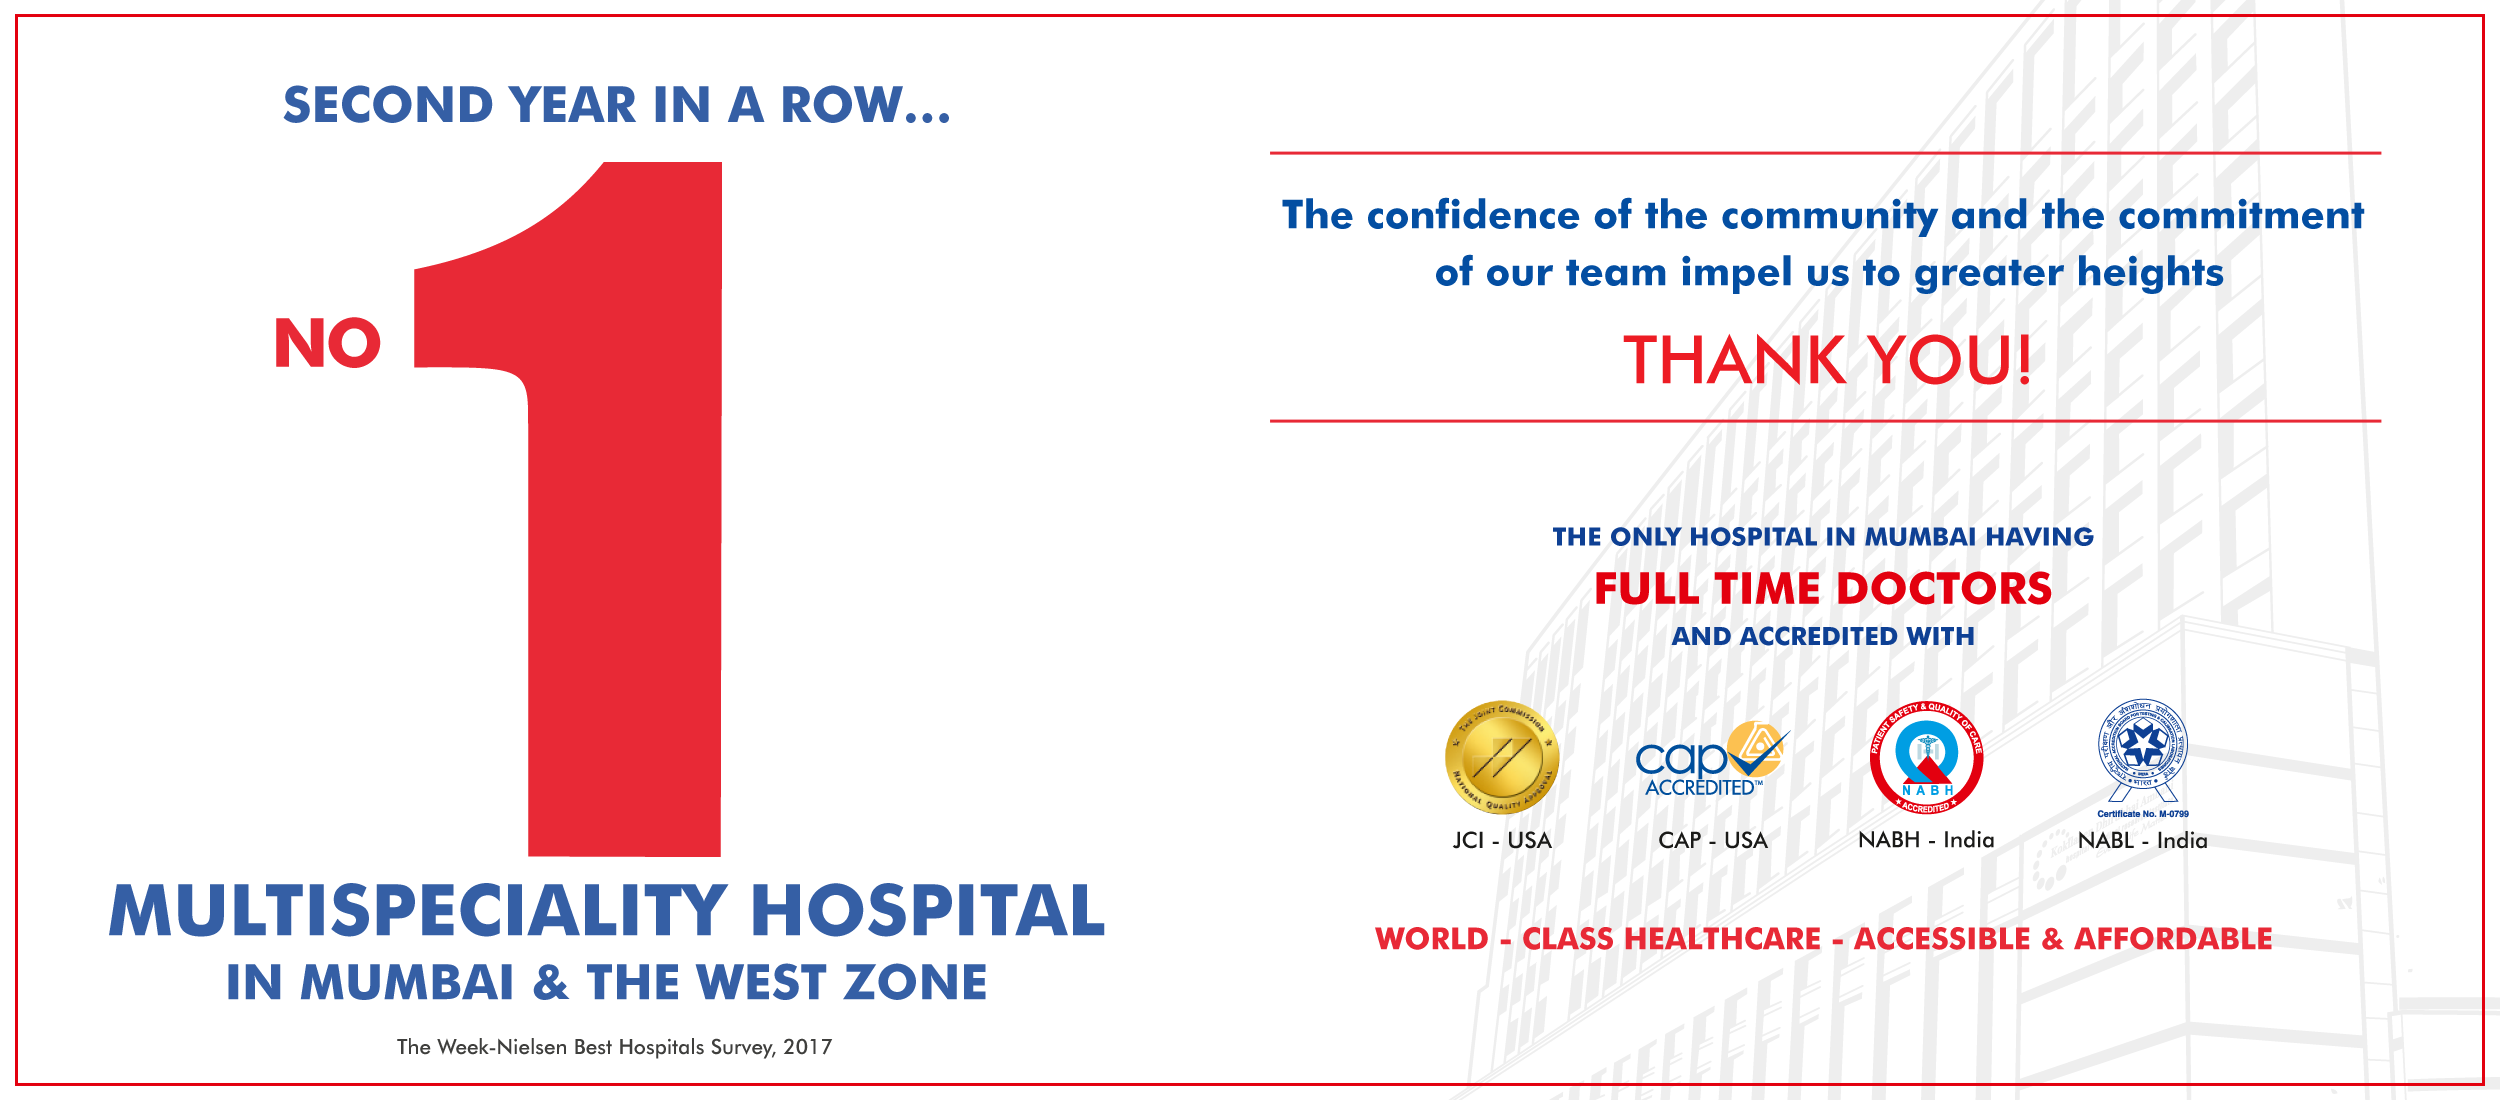 Kokilaben Dhirubhai Ambani Hospital - Multispeciality Hospital In Mumbai & The West Zone